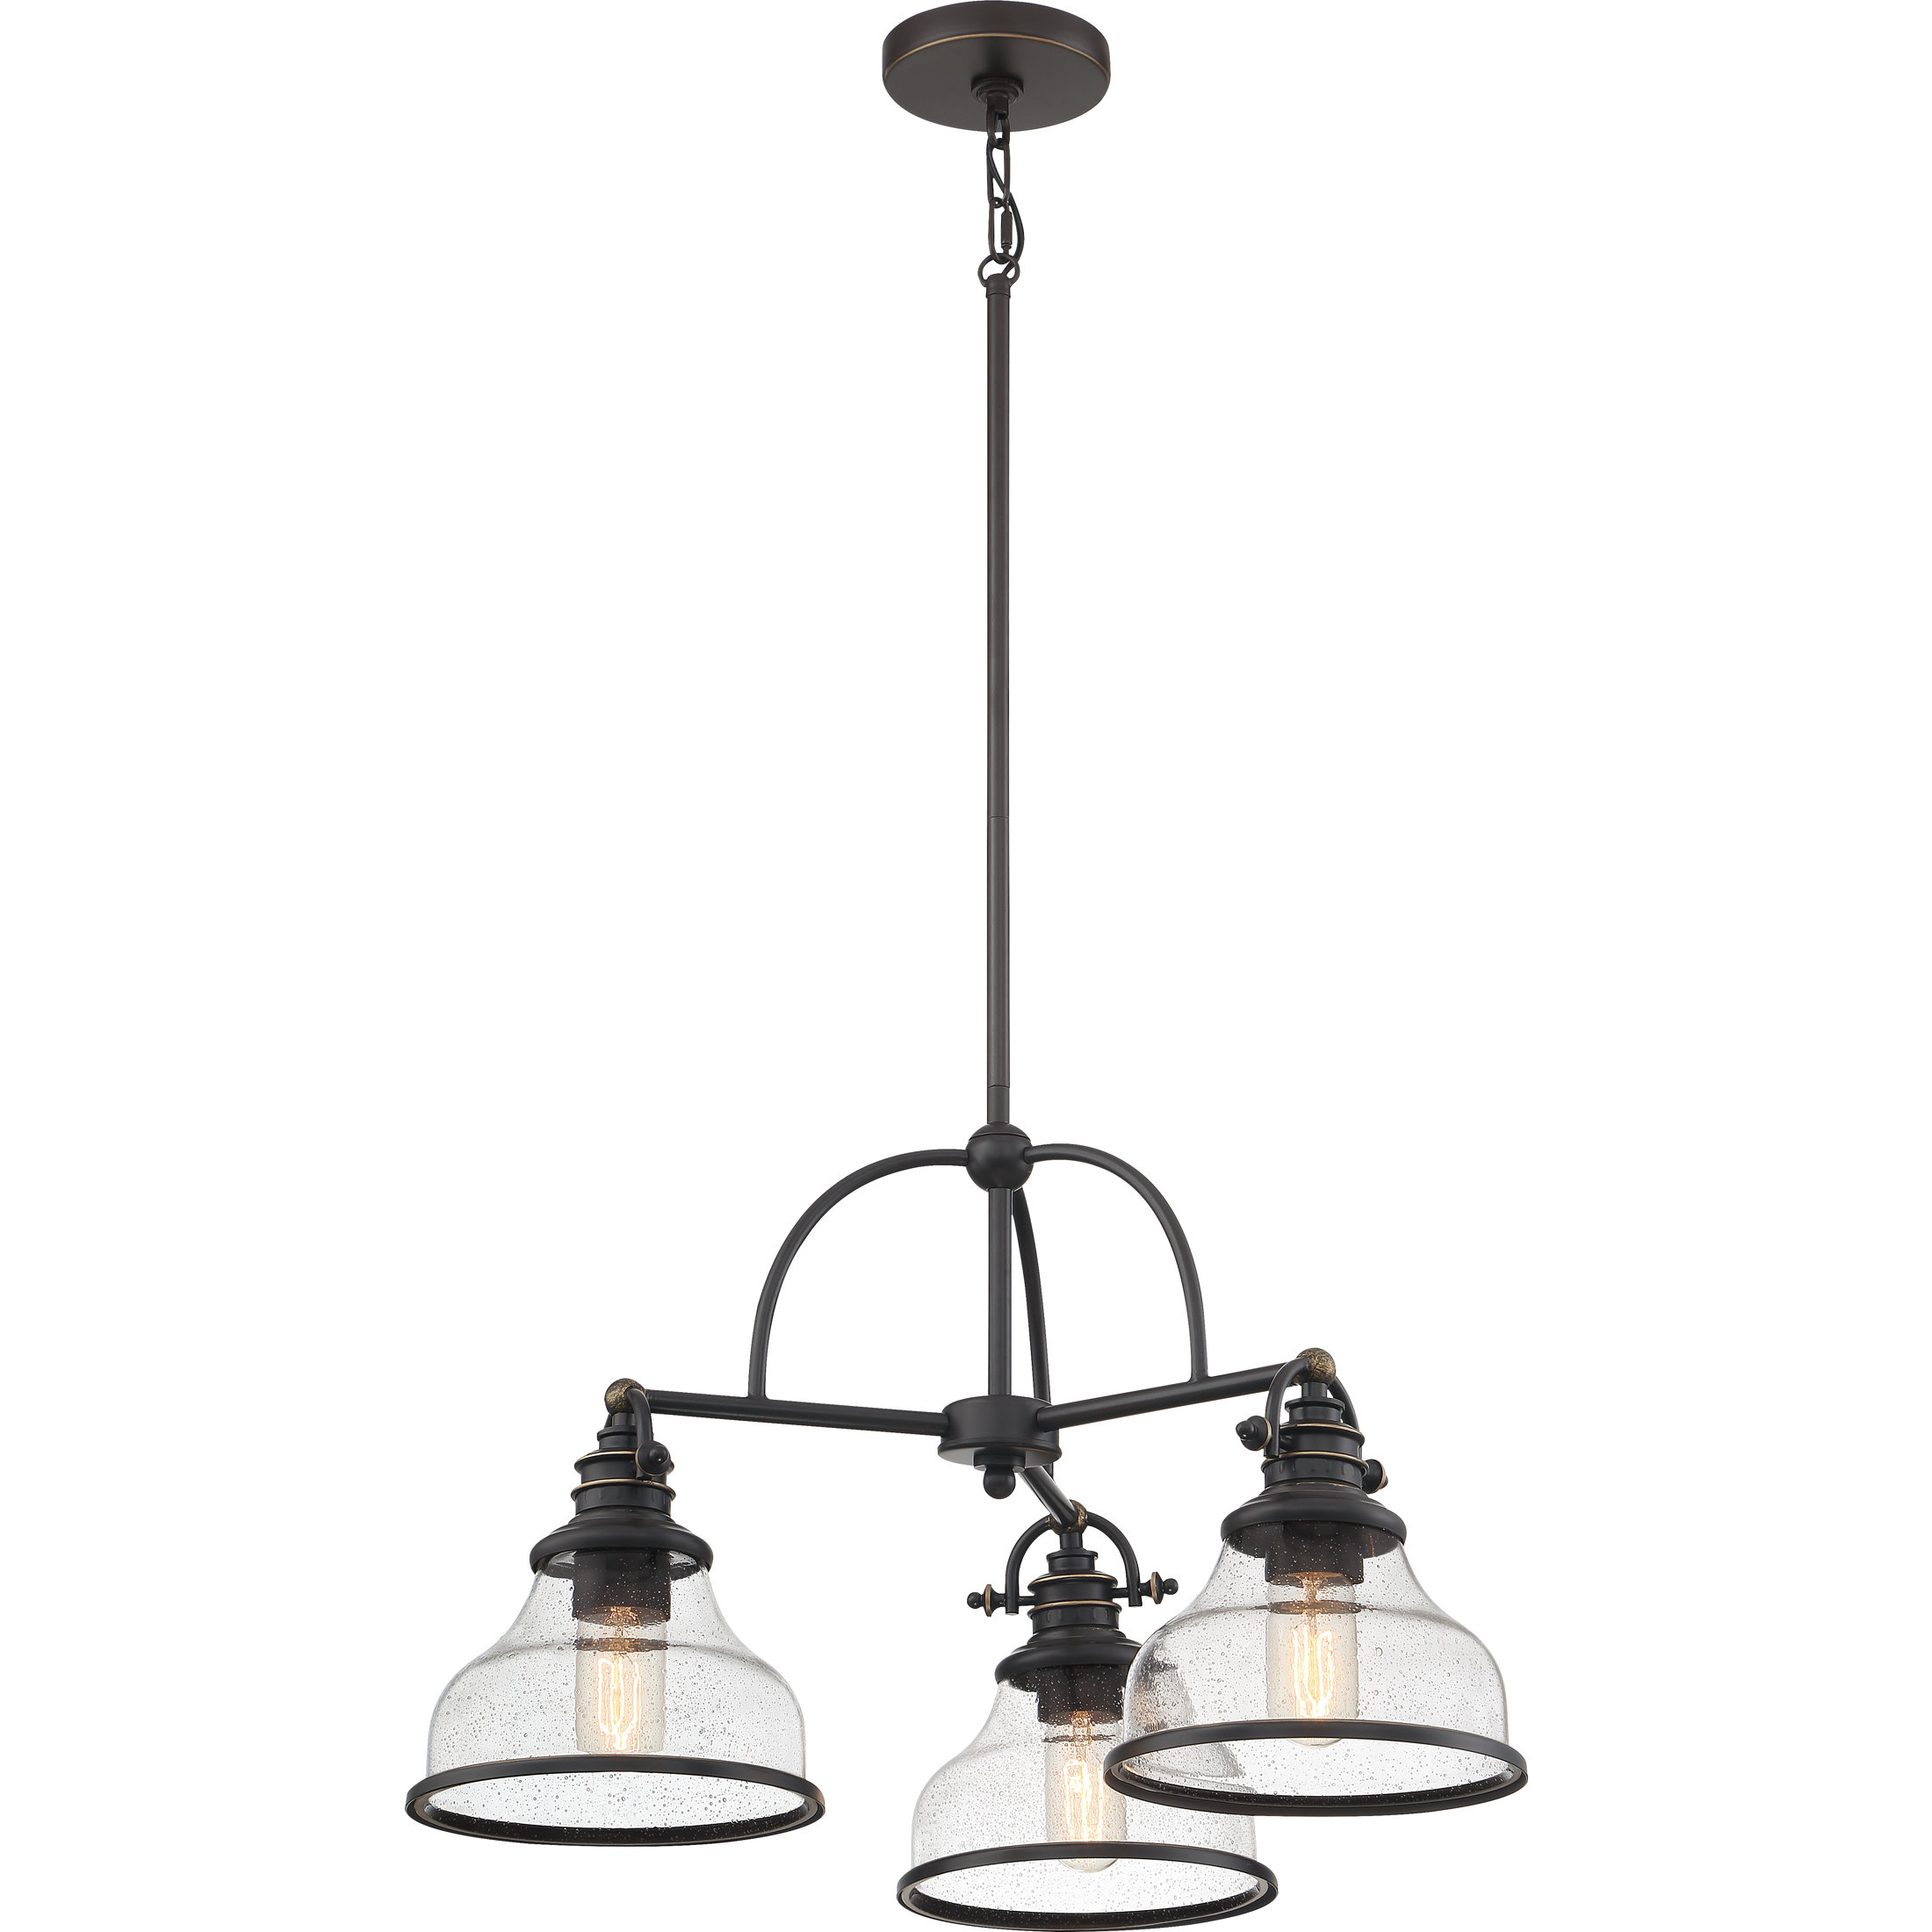 Widely Used Granville 3 Light Single Dome Pendants With Regard To Trent Austin Design Granville 2 Light Single Dome Pendant (View 20 of 20)